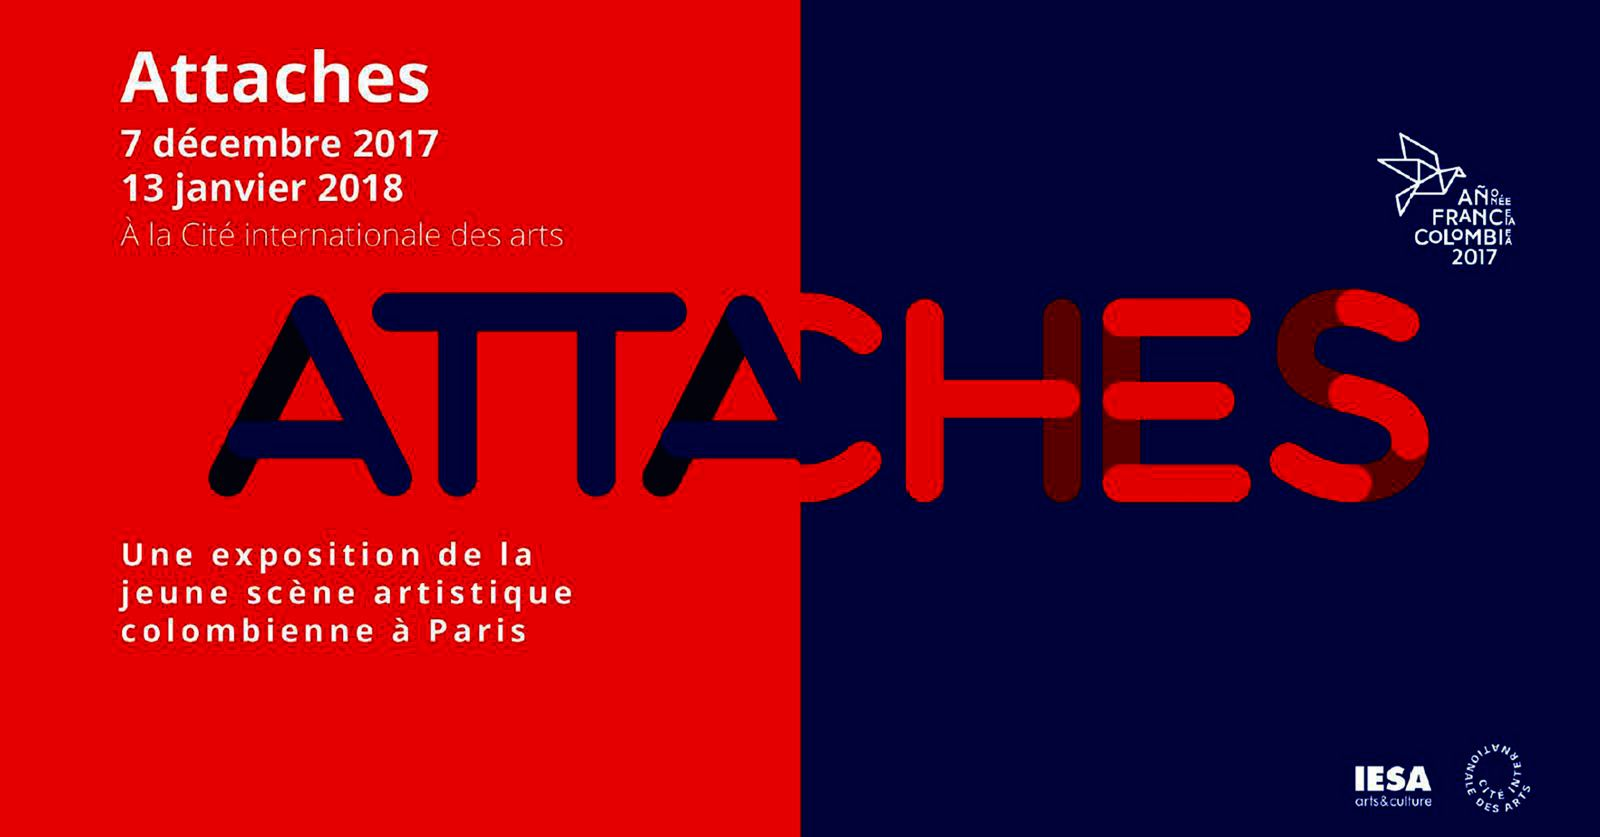 Exposition Collective Contemporaine: ATTACHES